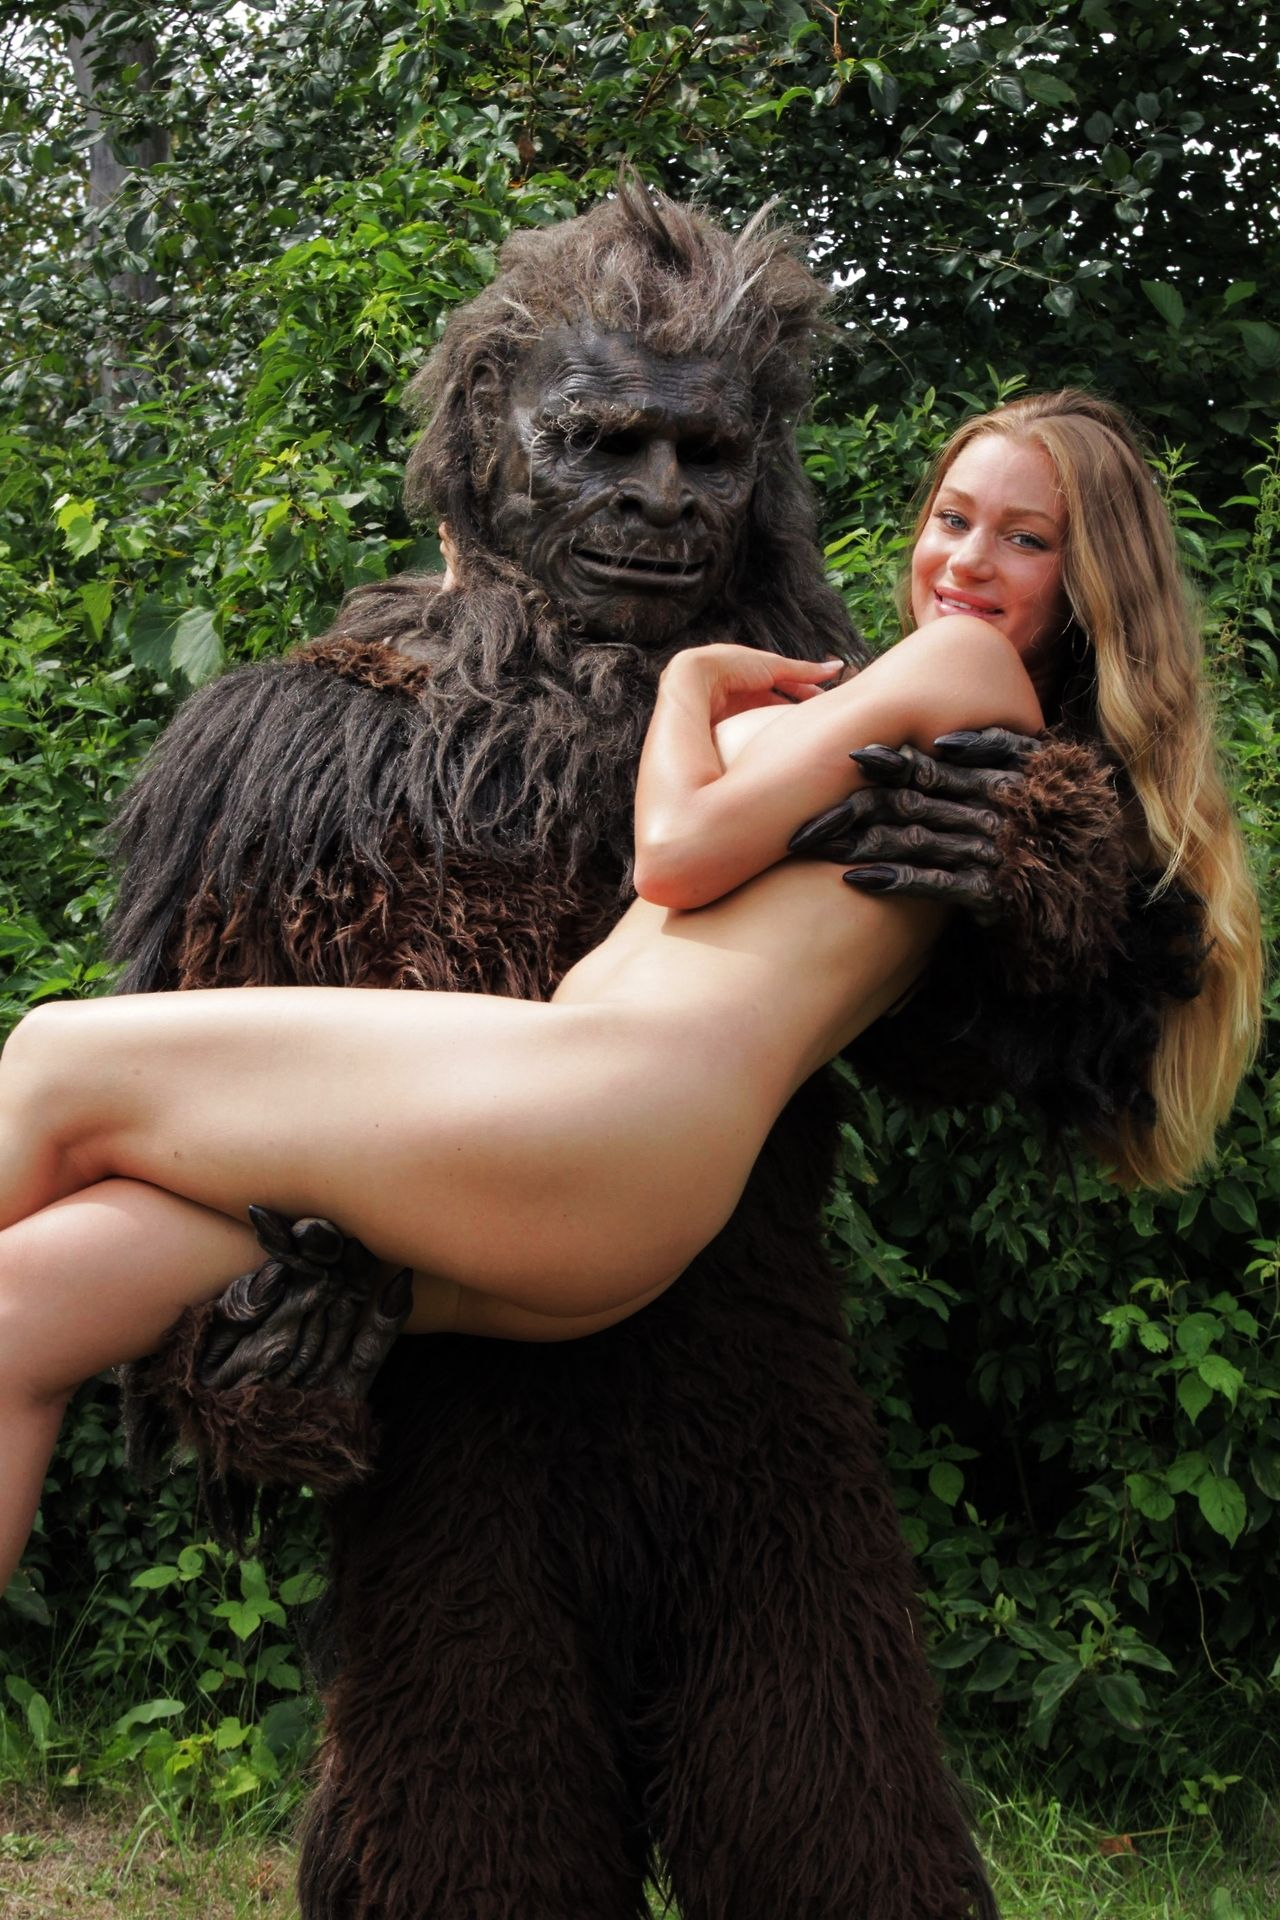 Showing xxx images for finding bigfoot xxx